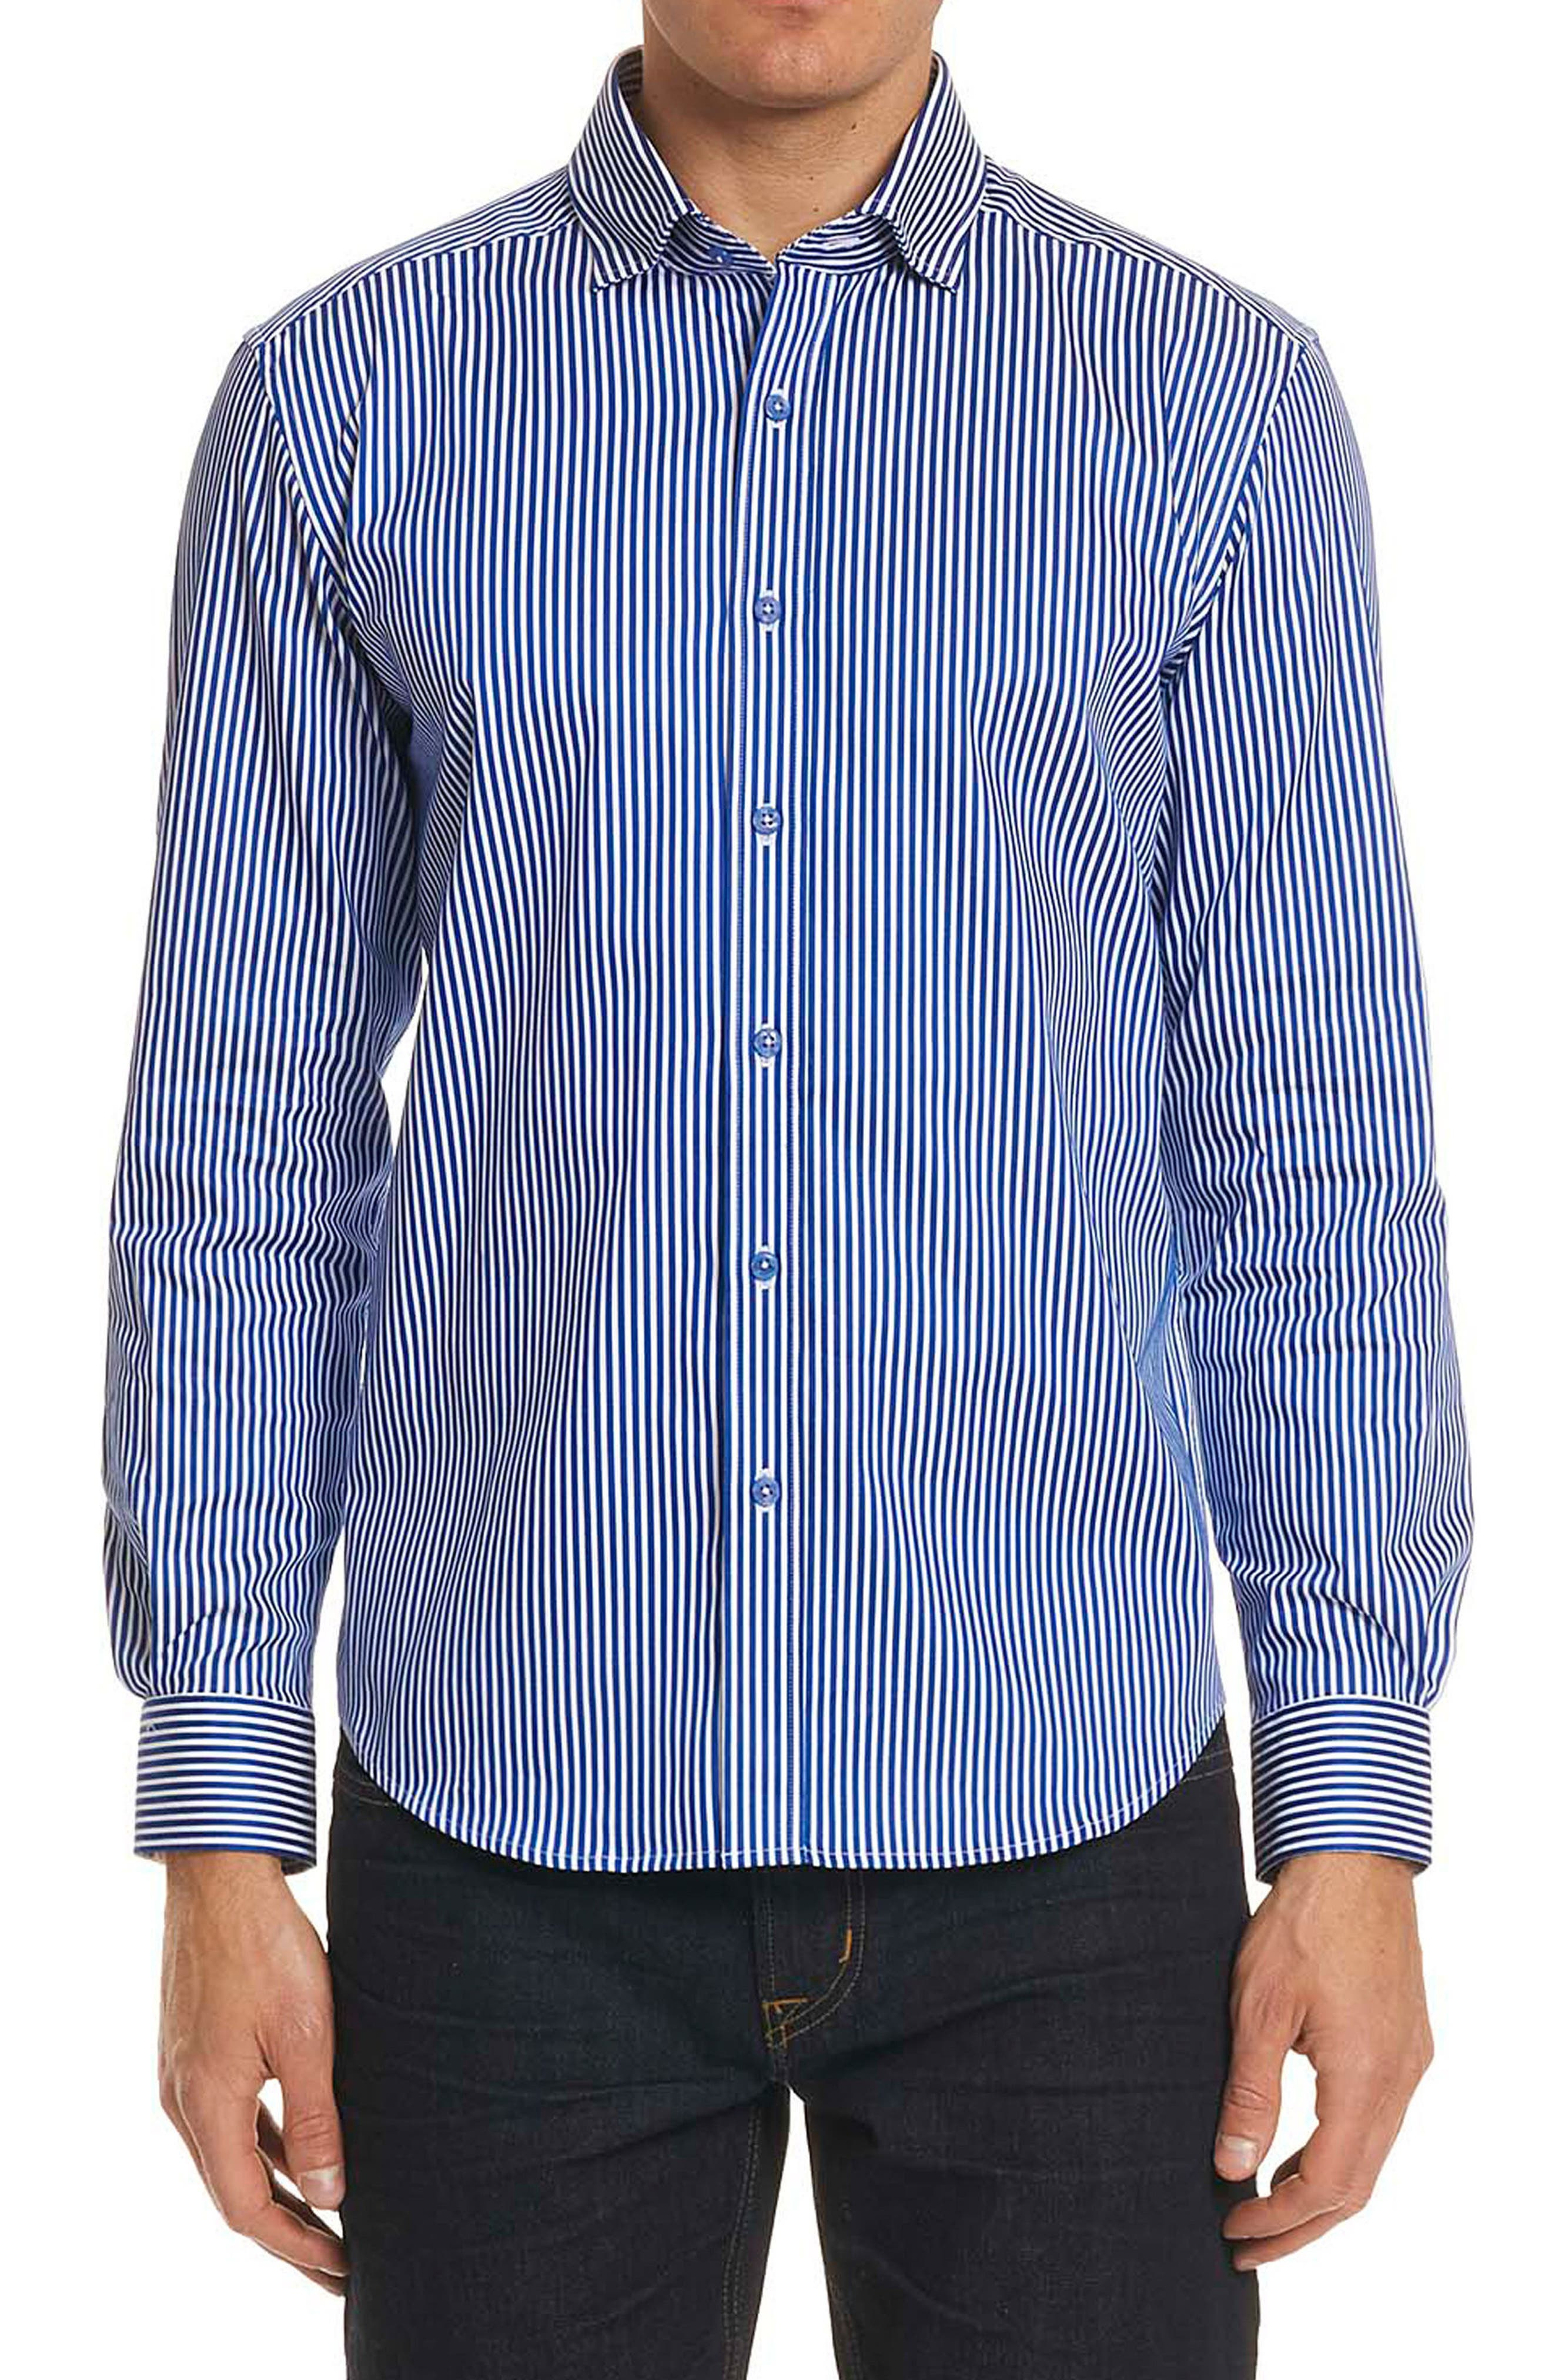 Luther Classic Fit Stripe Sport Shirt,                         Main,                         color, Navy